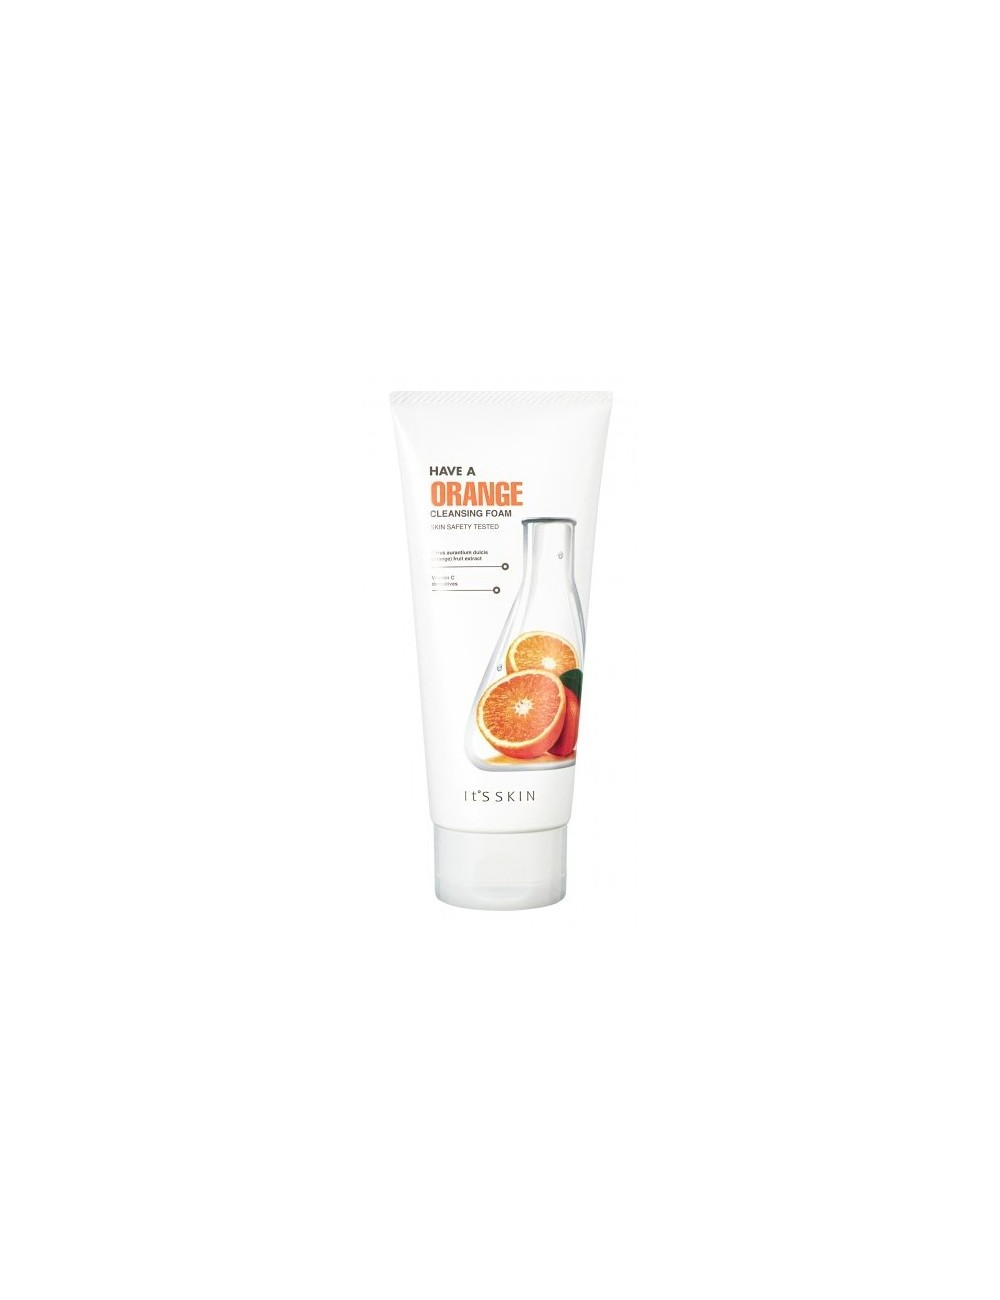 Espuma Limpiadora e Iluminadora IT'S SKIN Have a Orange Cleansing Foam